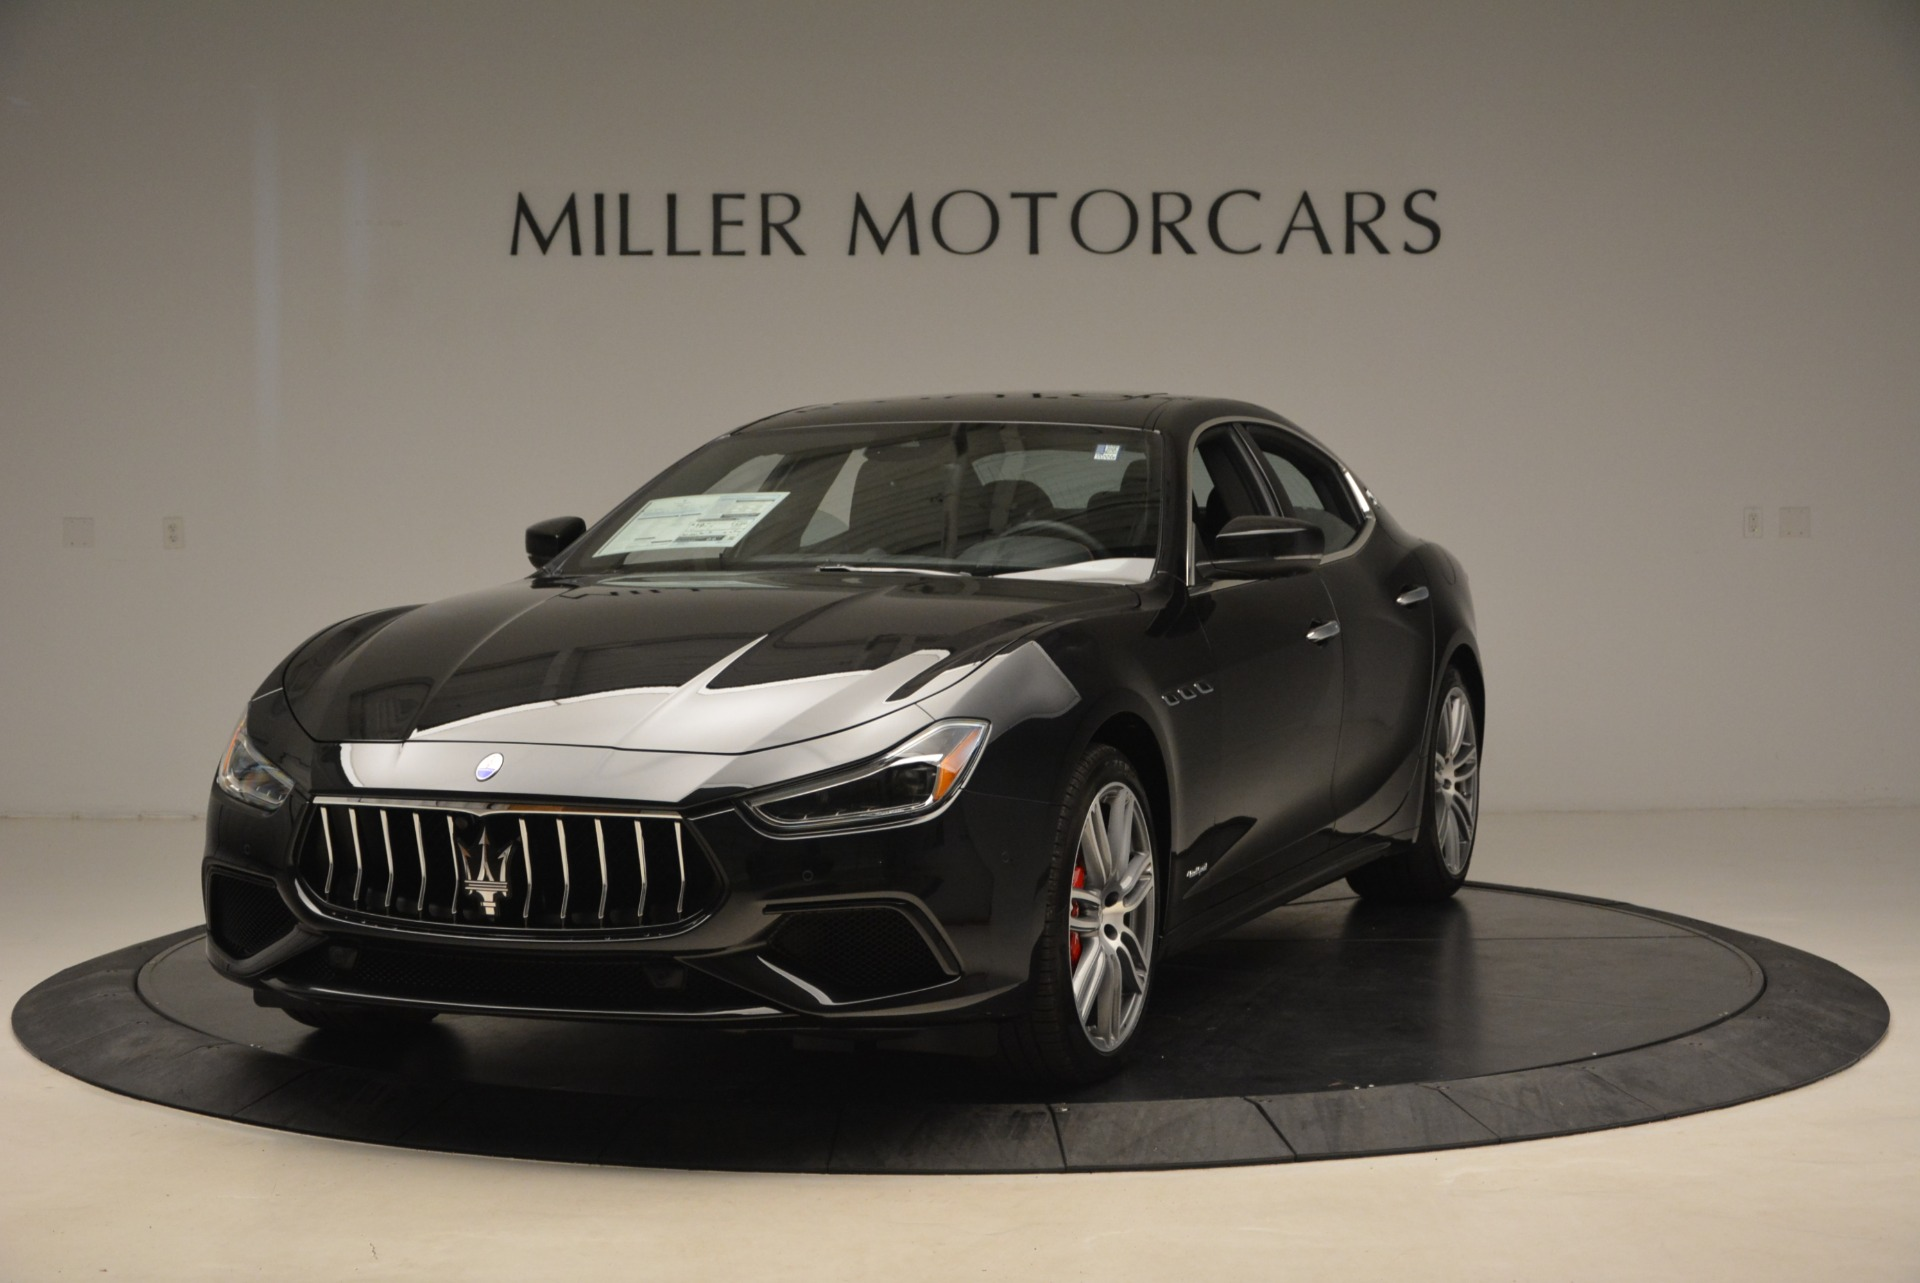 New 2018 Maserati Ghibli S Q4 GranLusso for sale Sold at McLaren Greenwich in Greenwich CT 06830 1